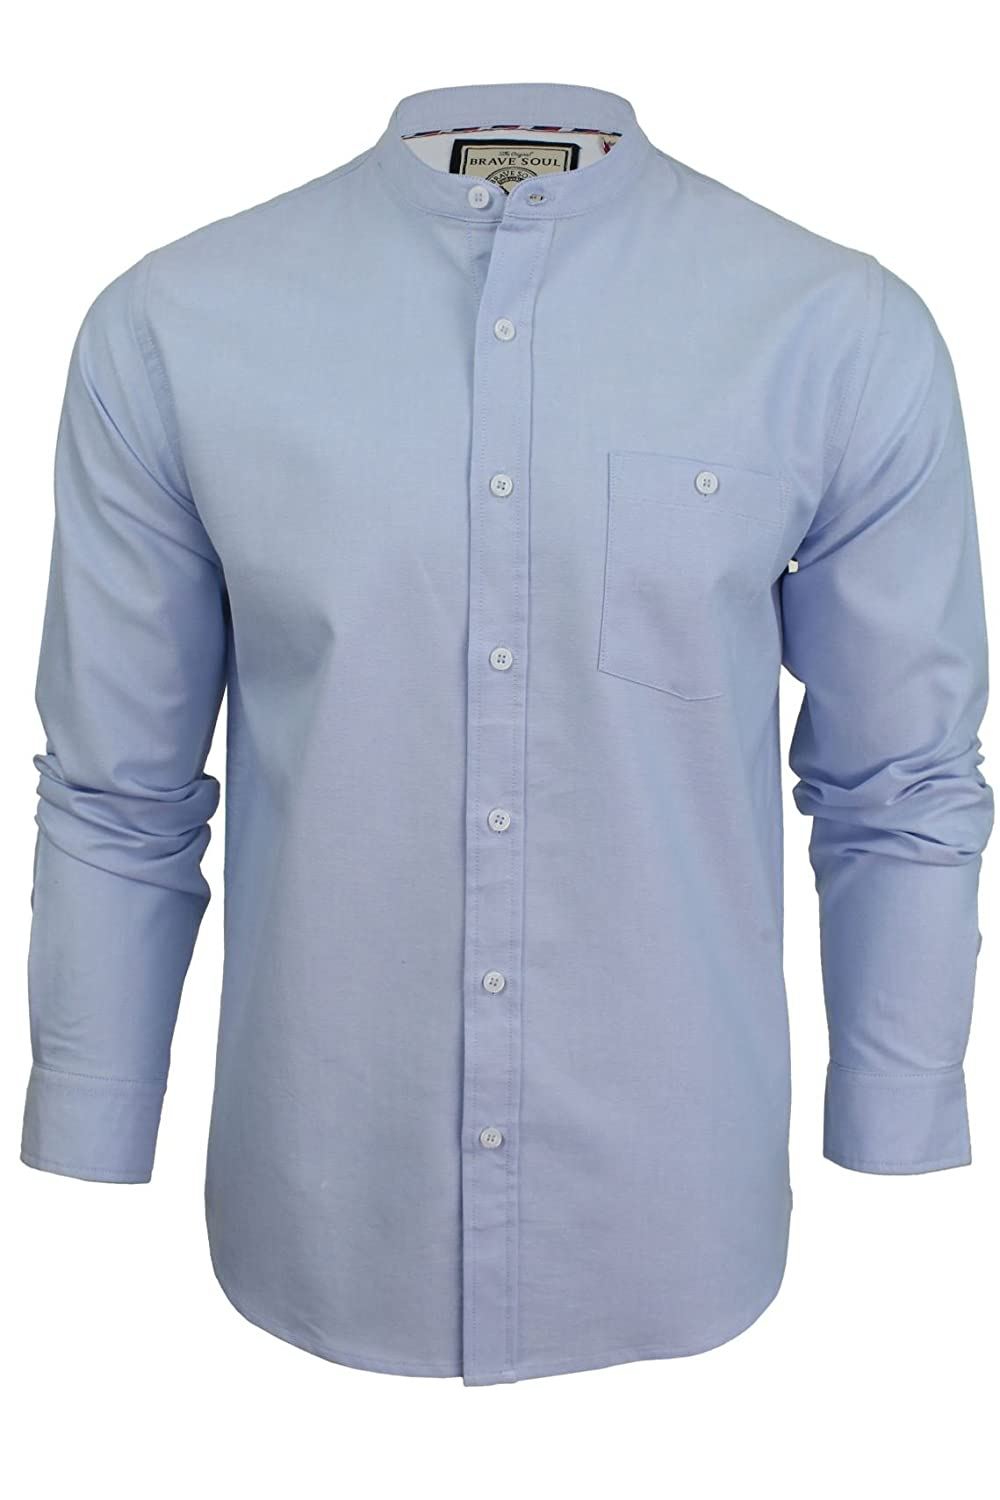 Mens Grandad Collar Oxford Shirt by Brave Soul 'Augustus' Long Sleeved